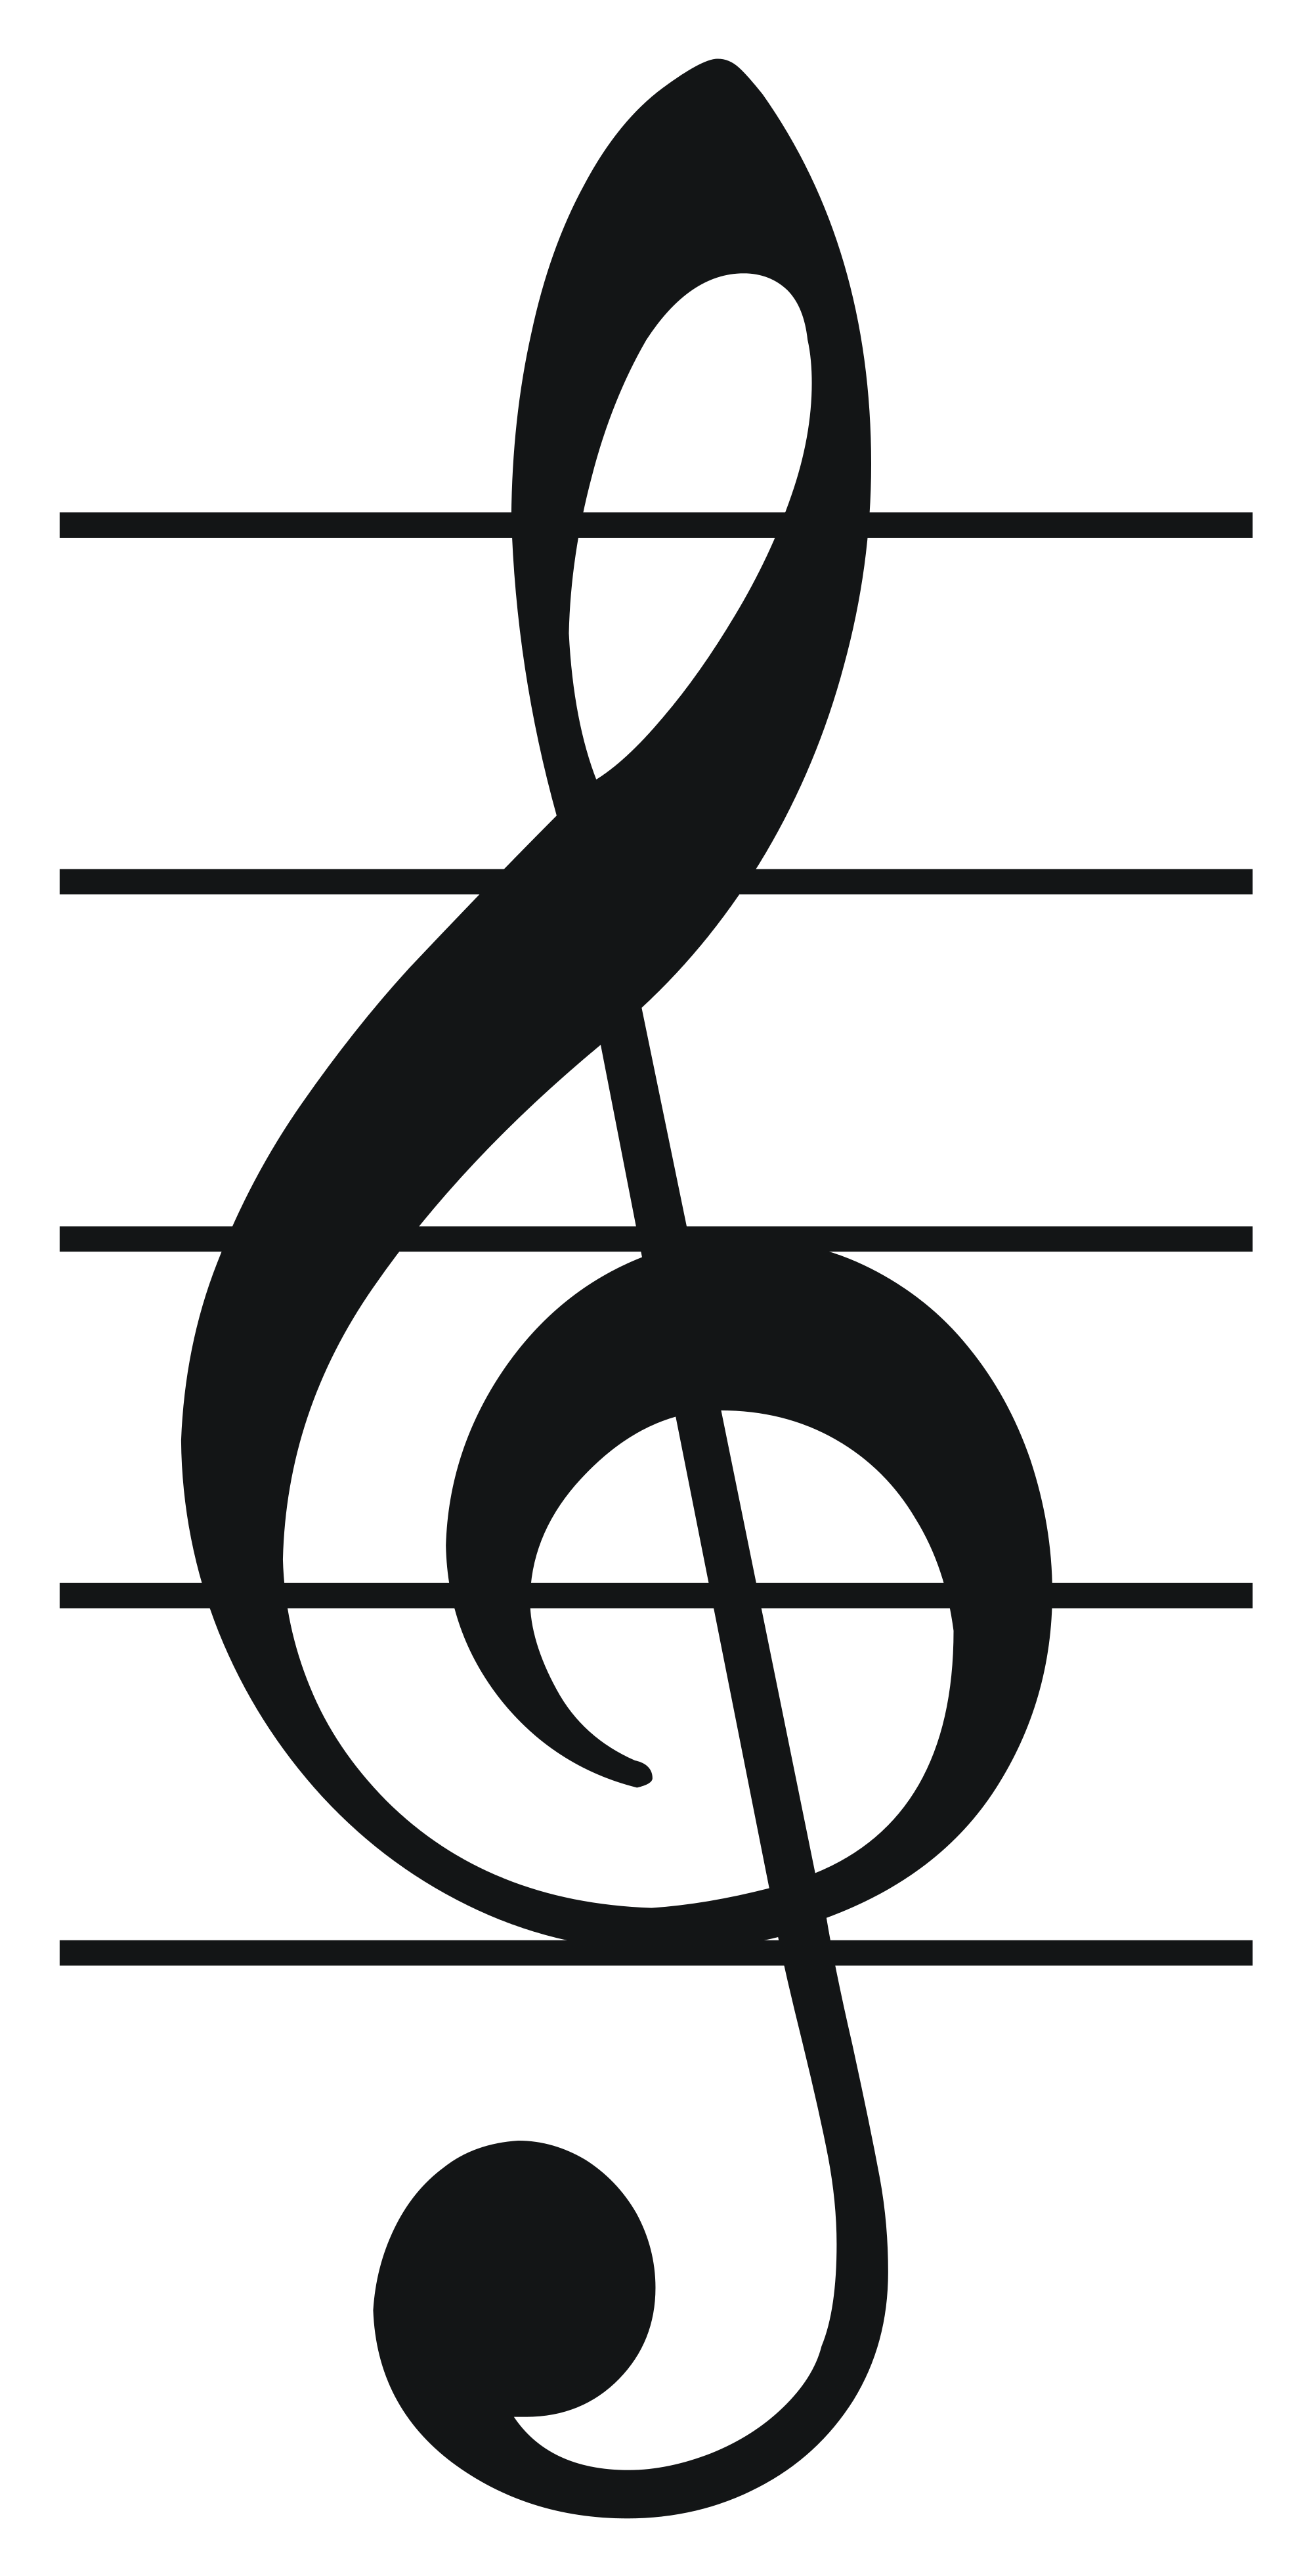 Clarinet vector treble clef. Violin april onthemarch co